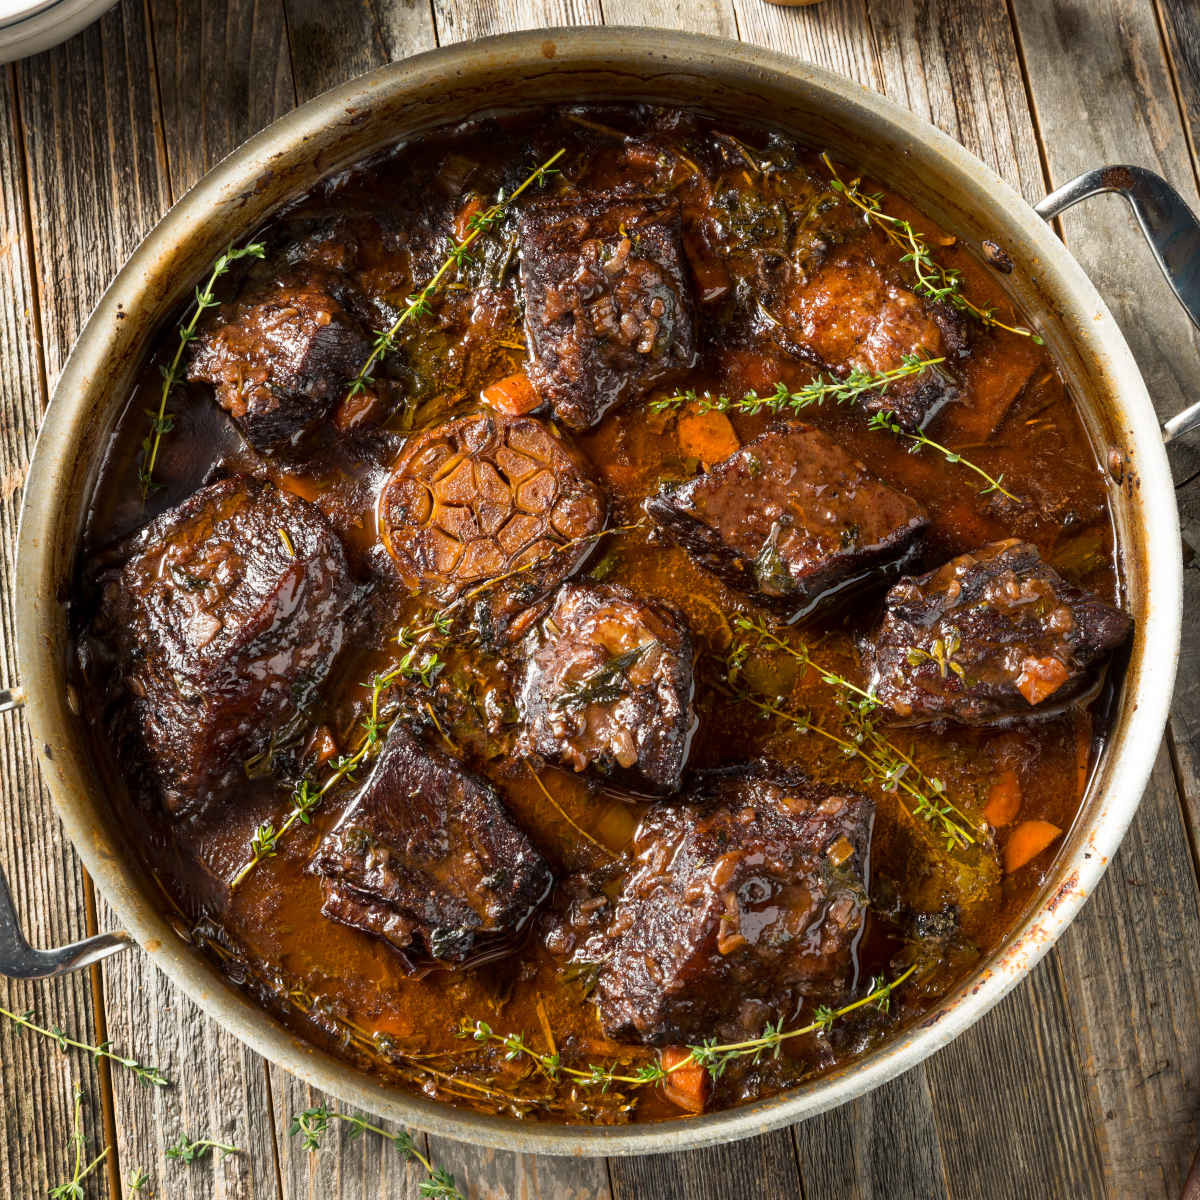 Braised Short Ribs with Rosemary Polenta & Orange Gremolata